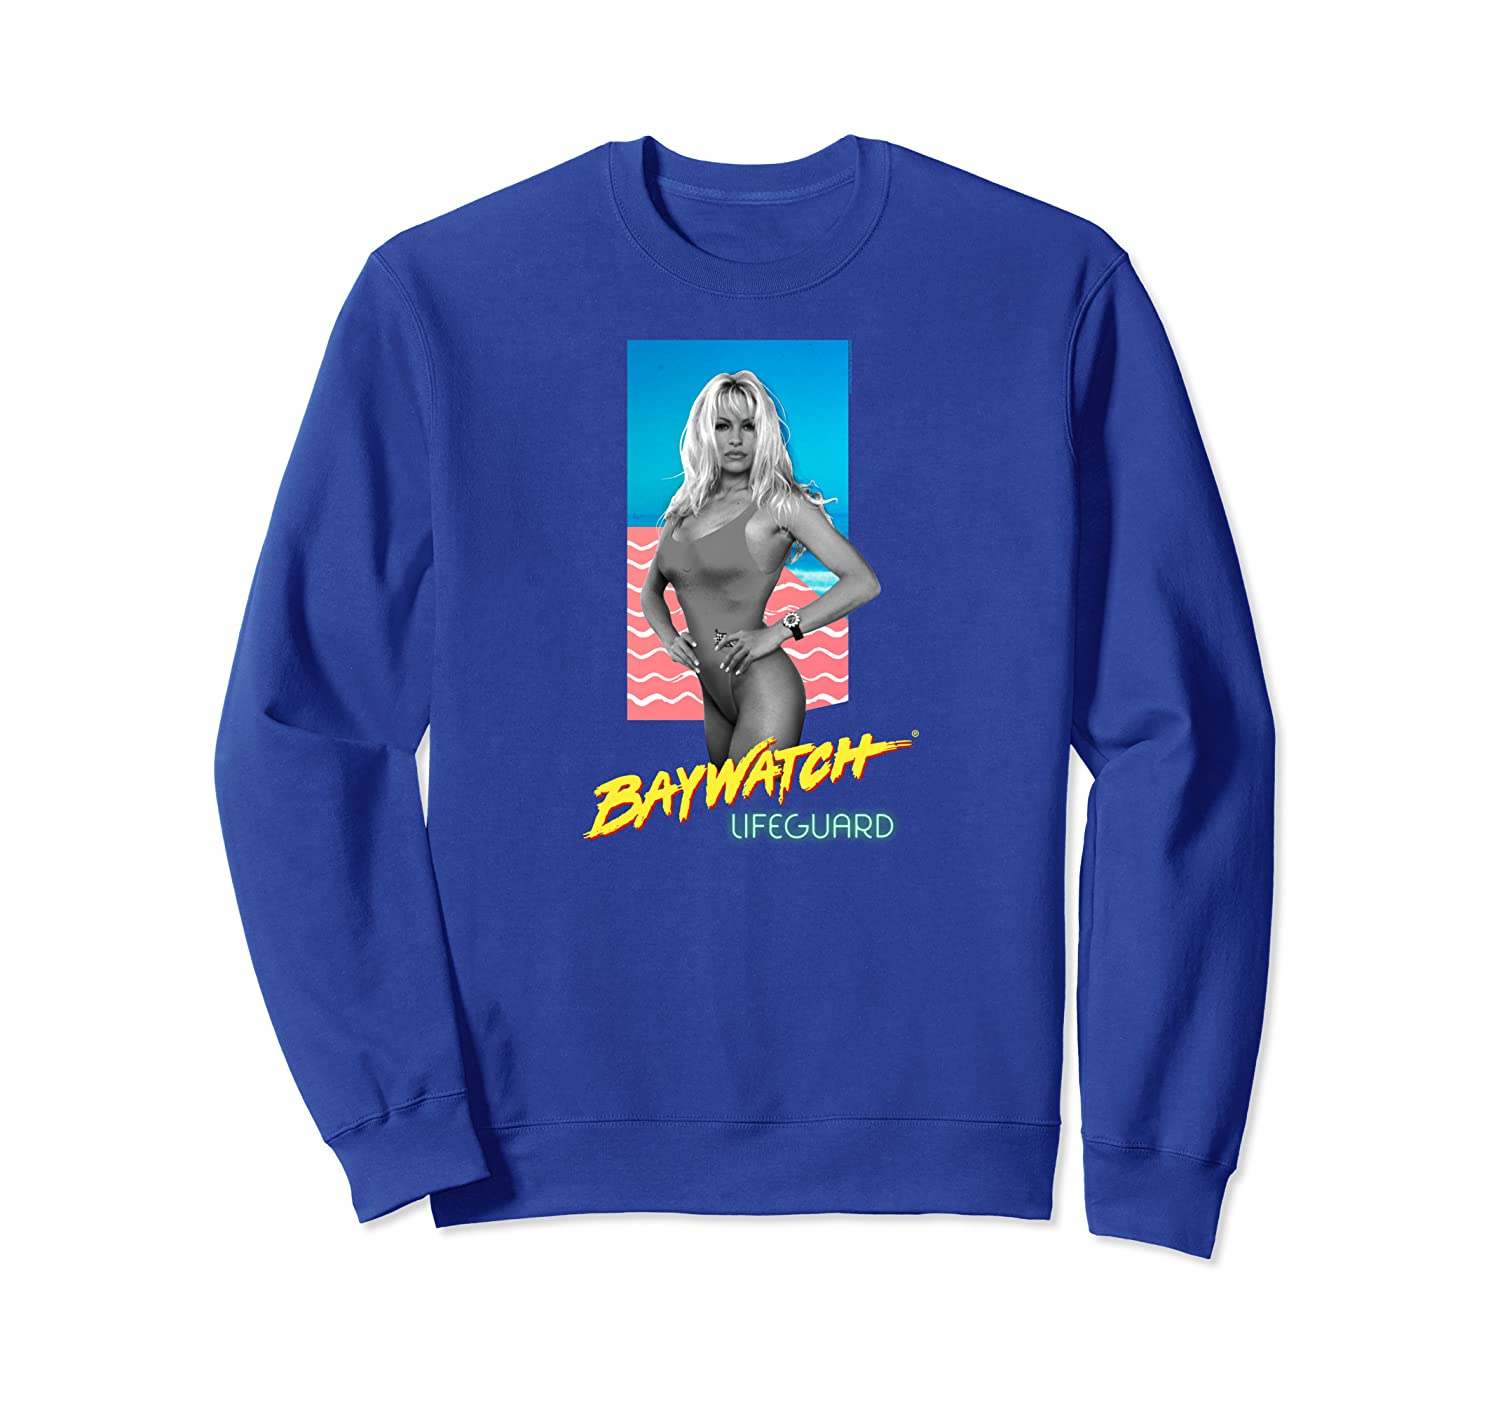 Baywatch: Lifeguard C.J Parker Sweatshirt